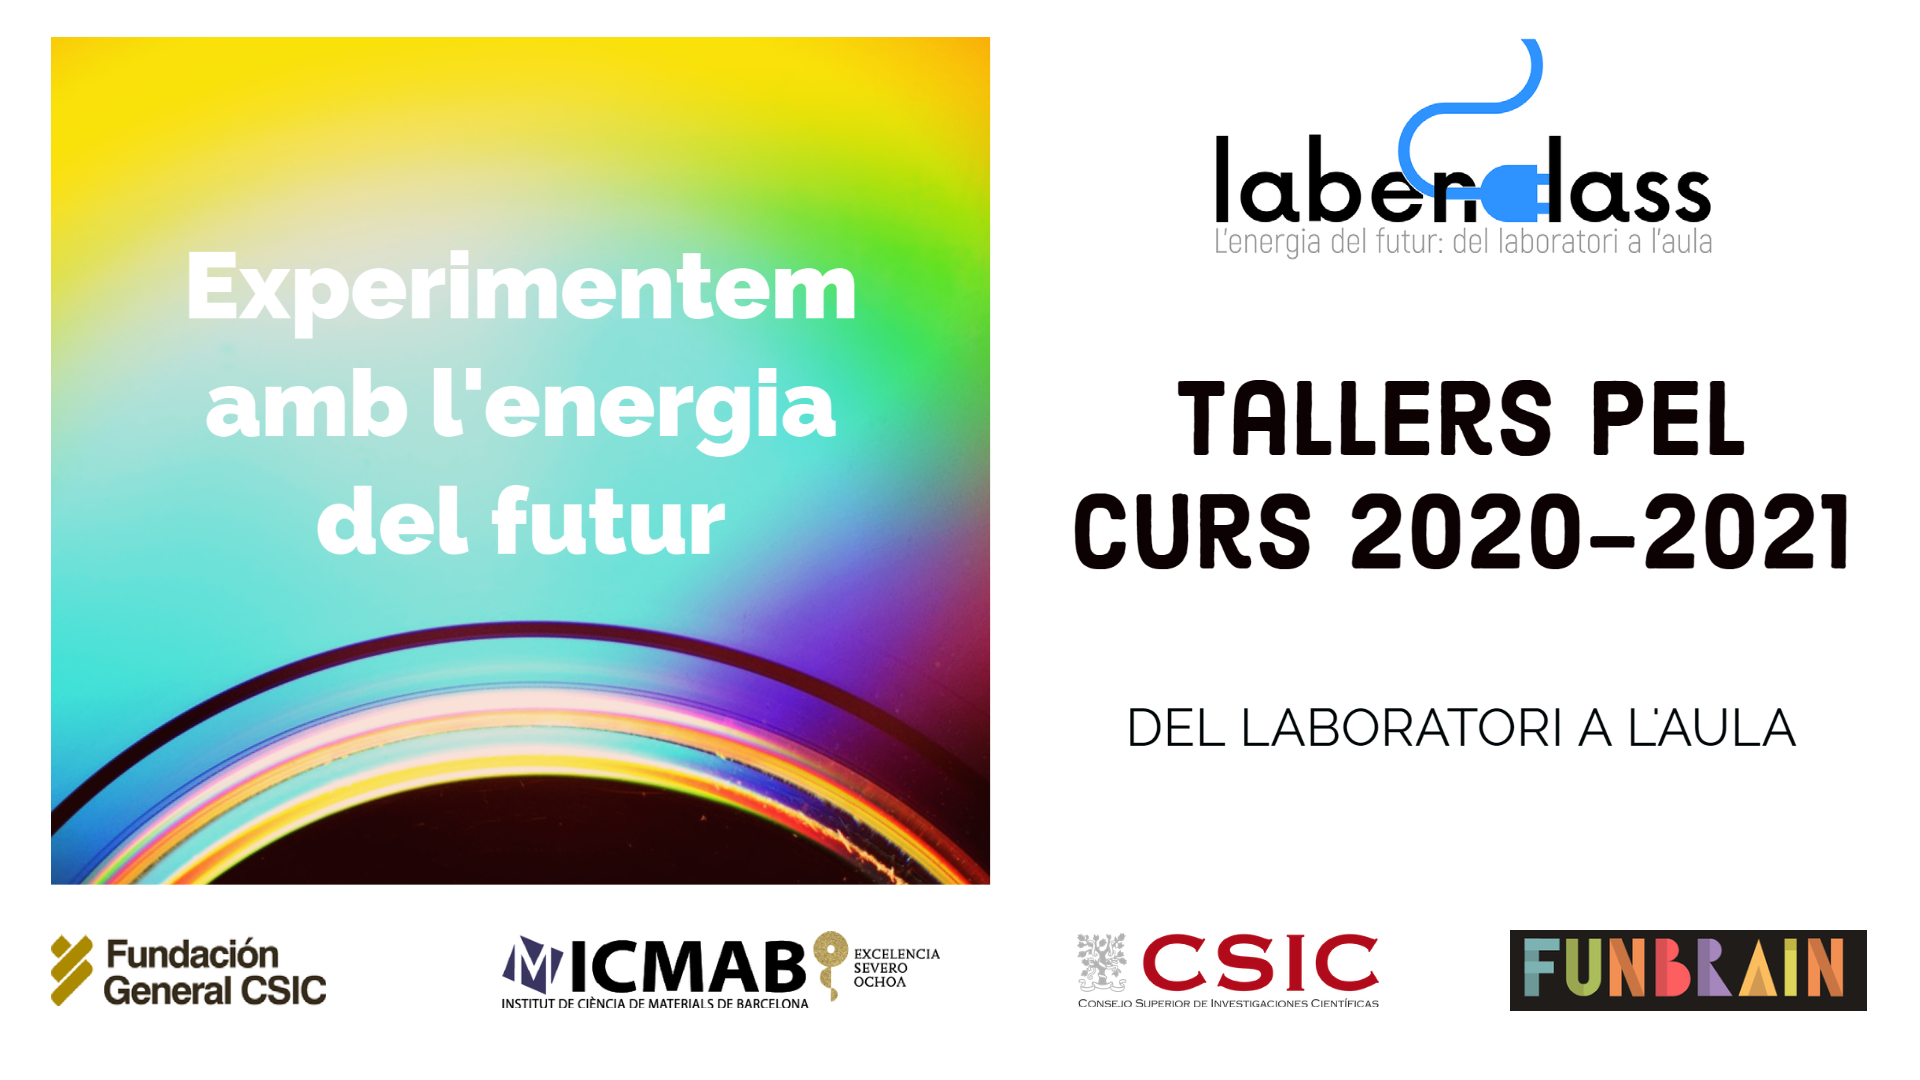 LABENCLASS TALLERS